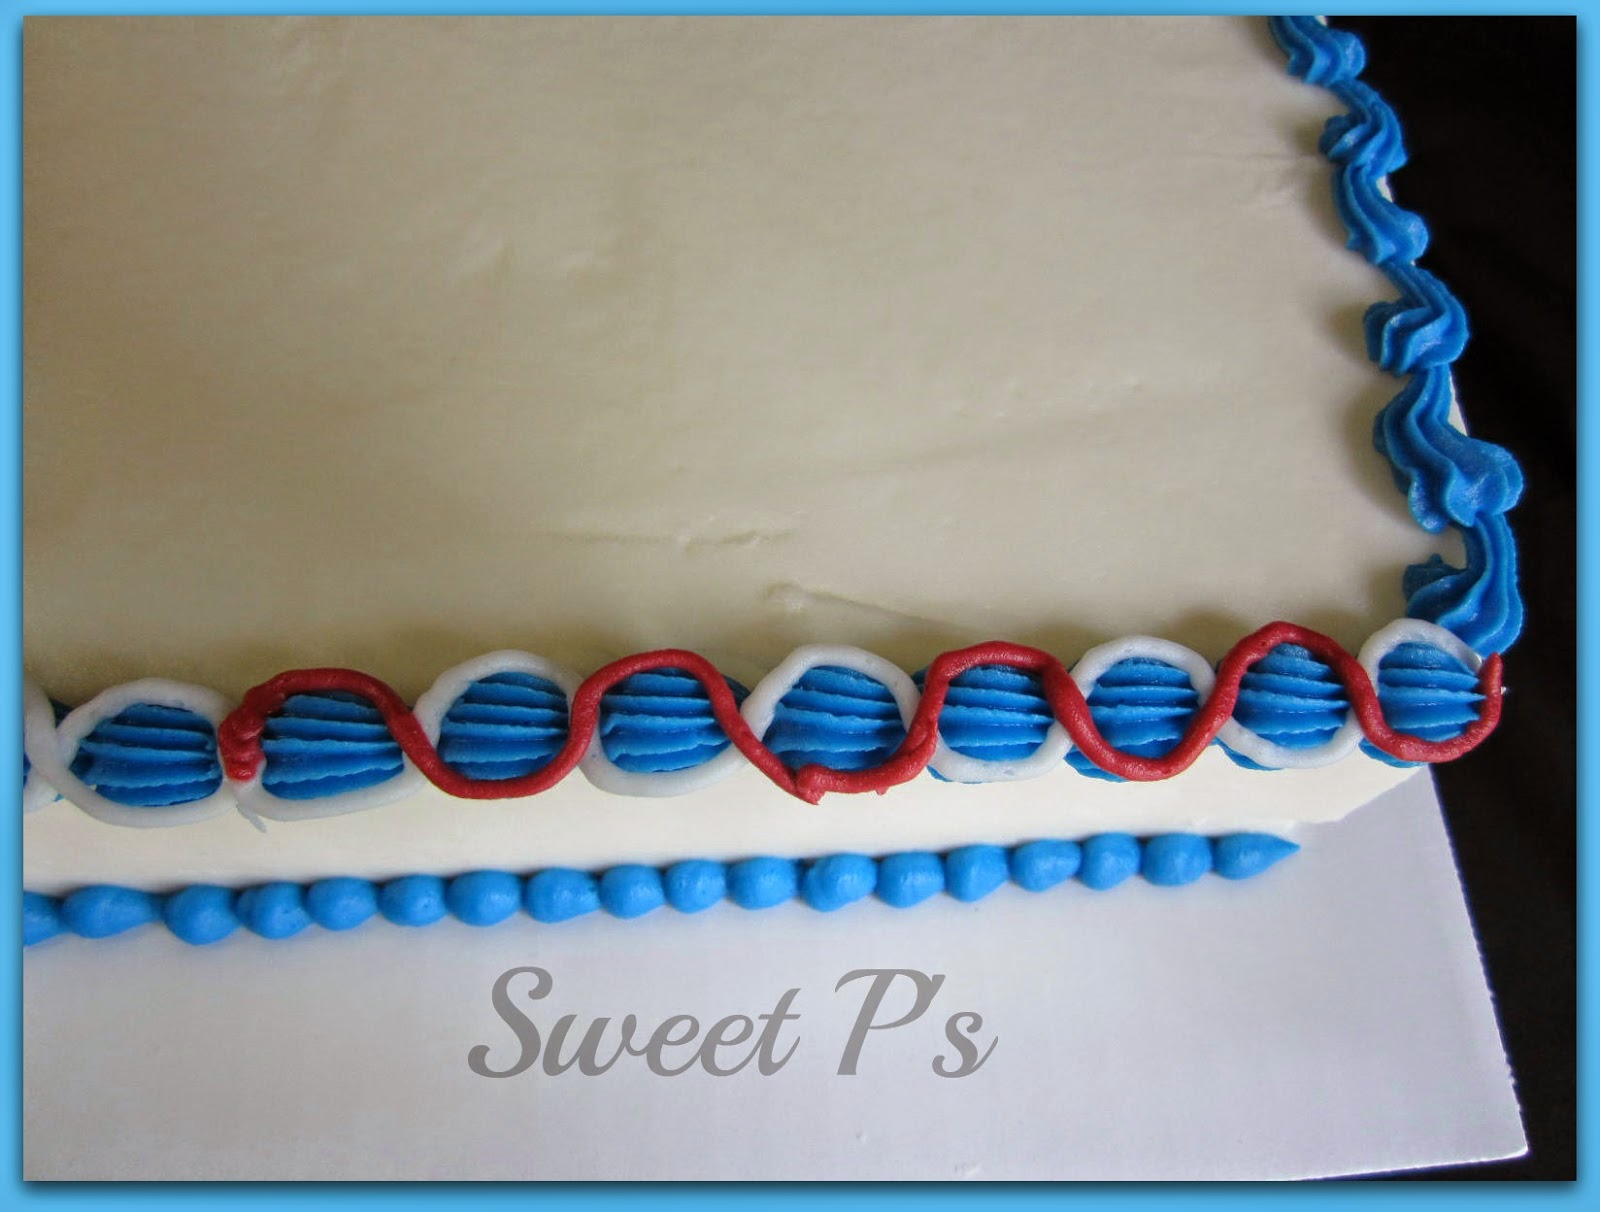 Cake Decorating Borders : Simple Buttercream Borders Sweet P s Cake Decorating ...